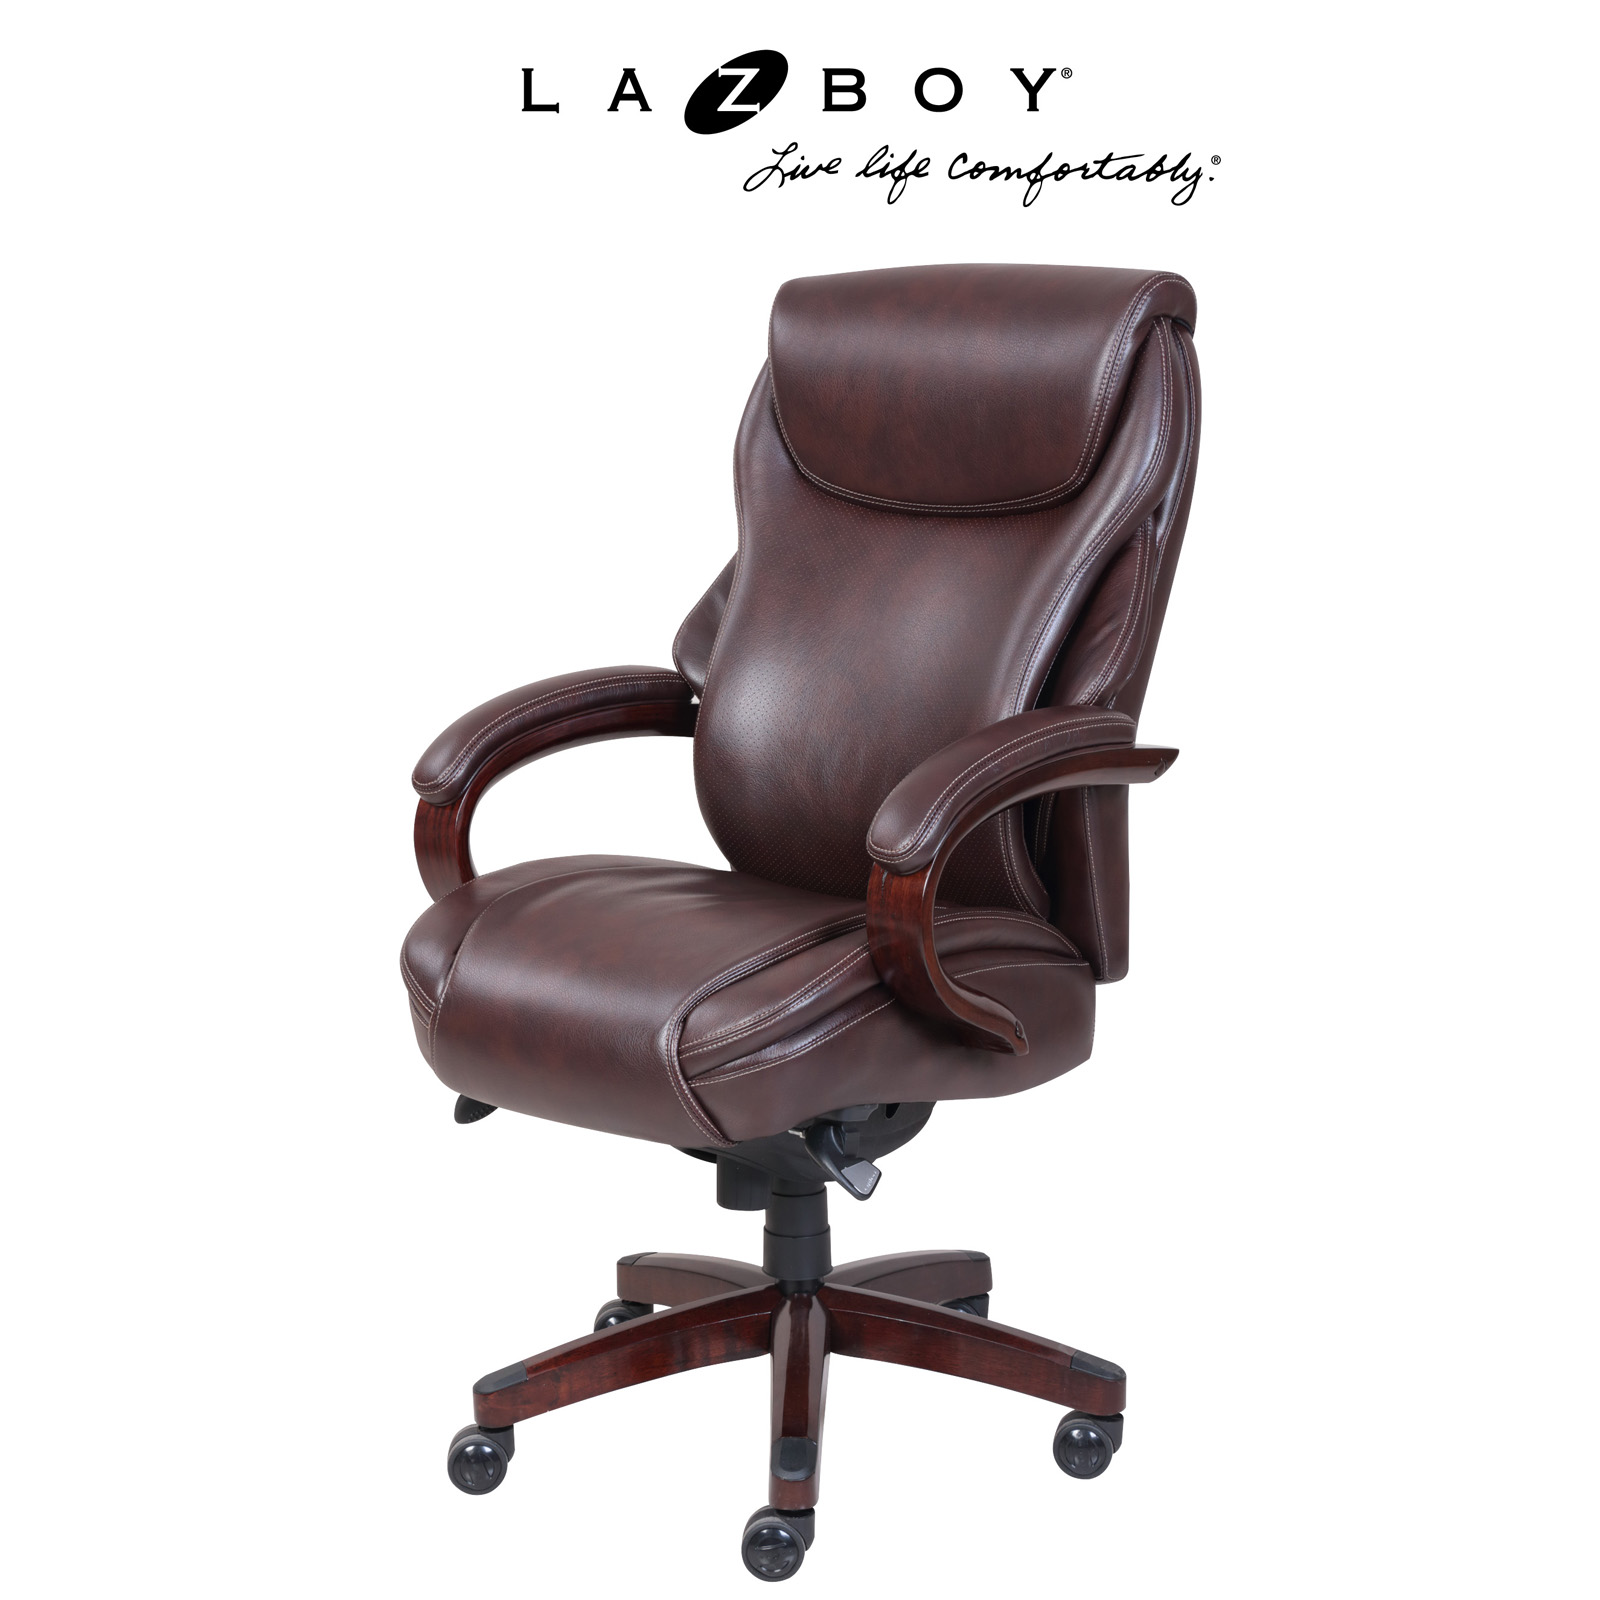 la z boy trafford big and tall executive office chair vino stokke harness chairs hayneedle hyland coffee